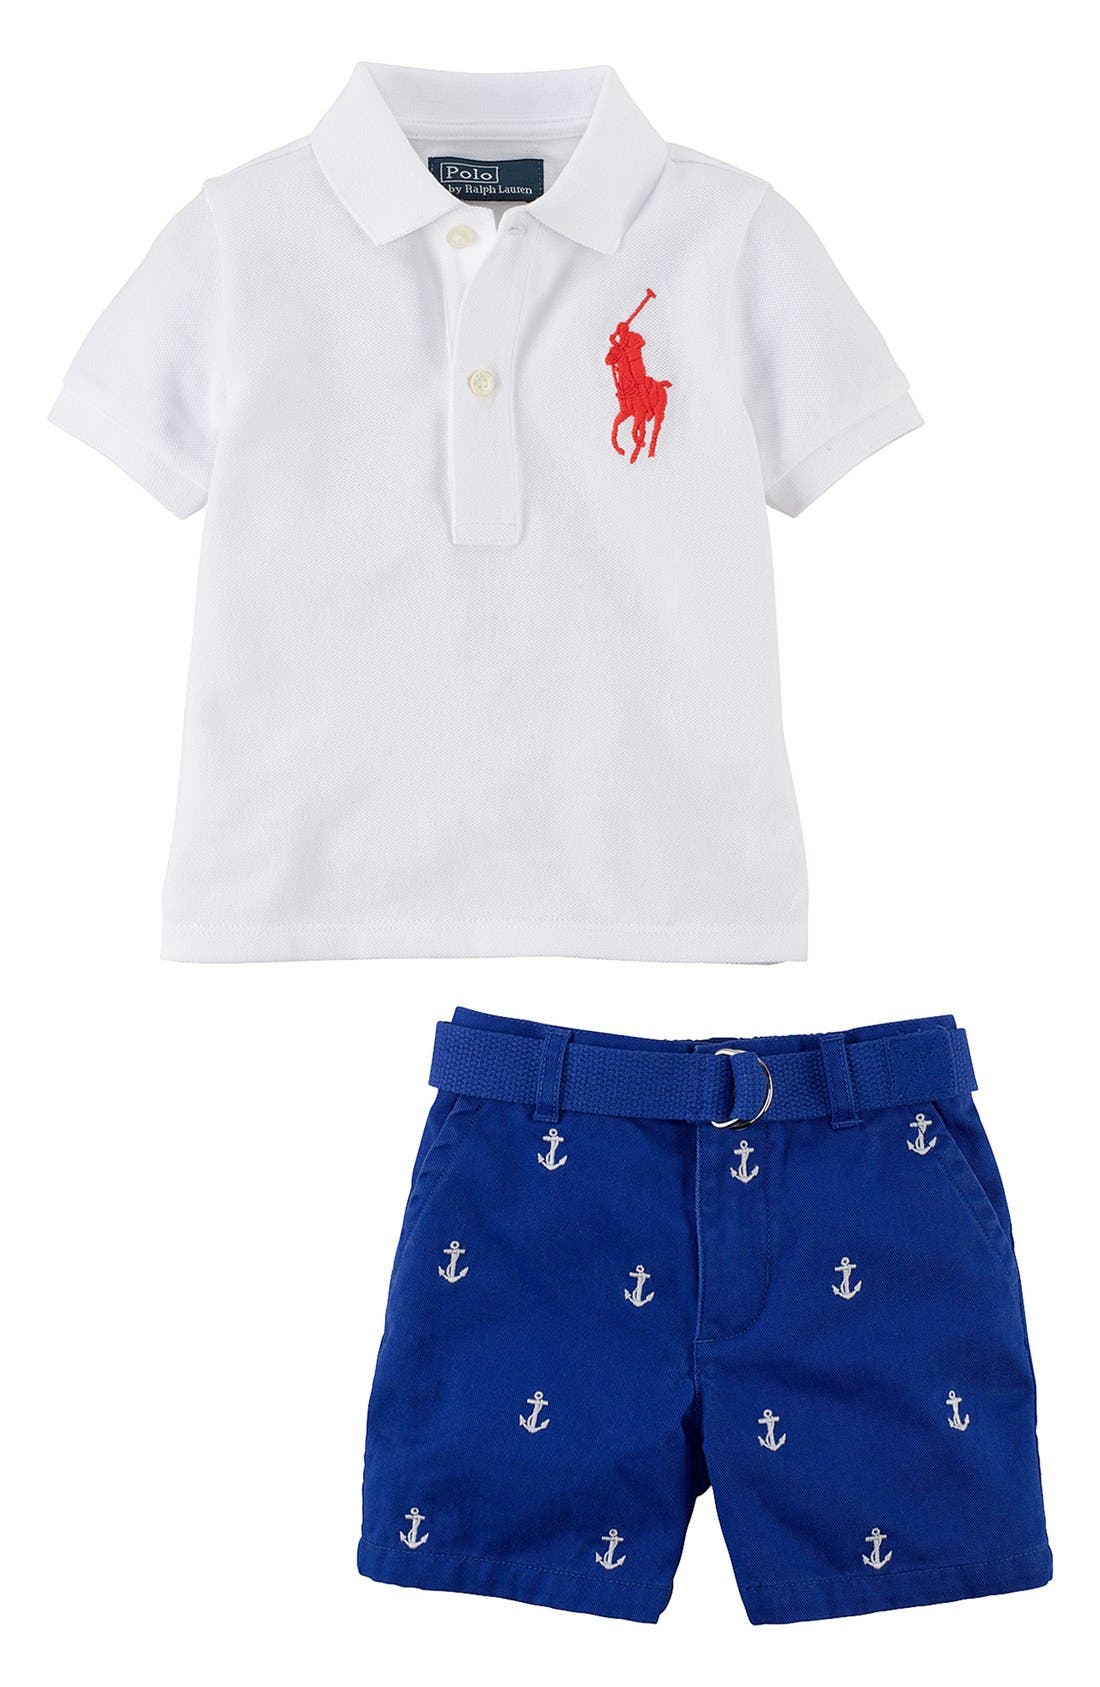 Main Image - Ralph Lauren Polo & Shorts (Baby Boys)